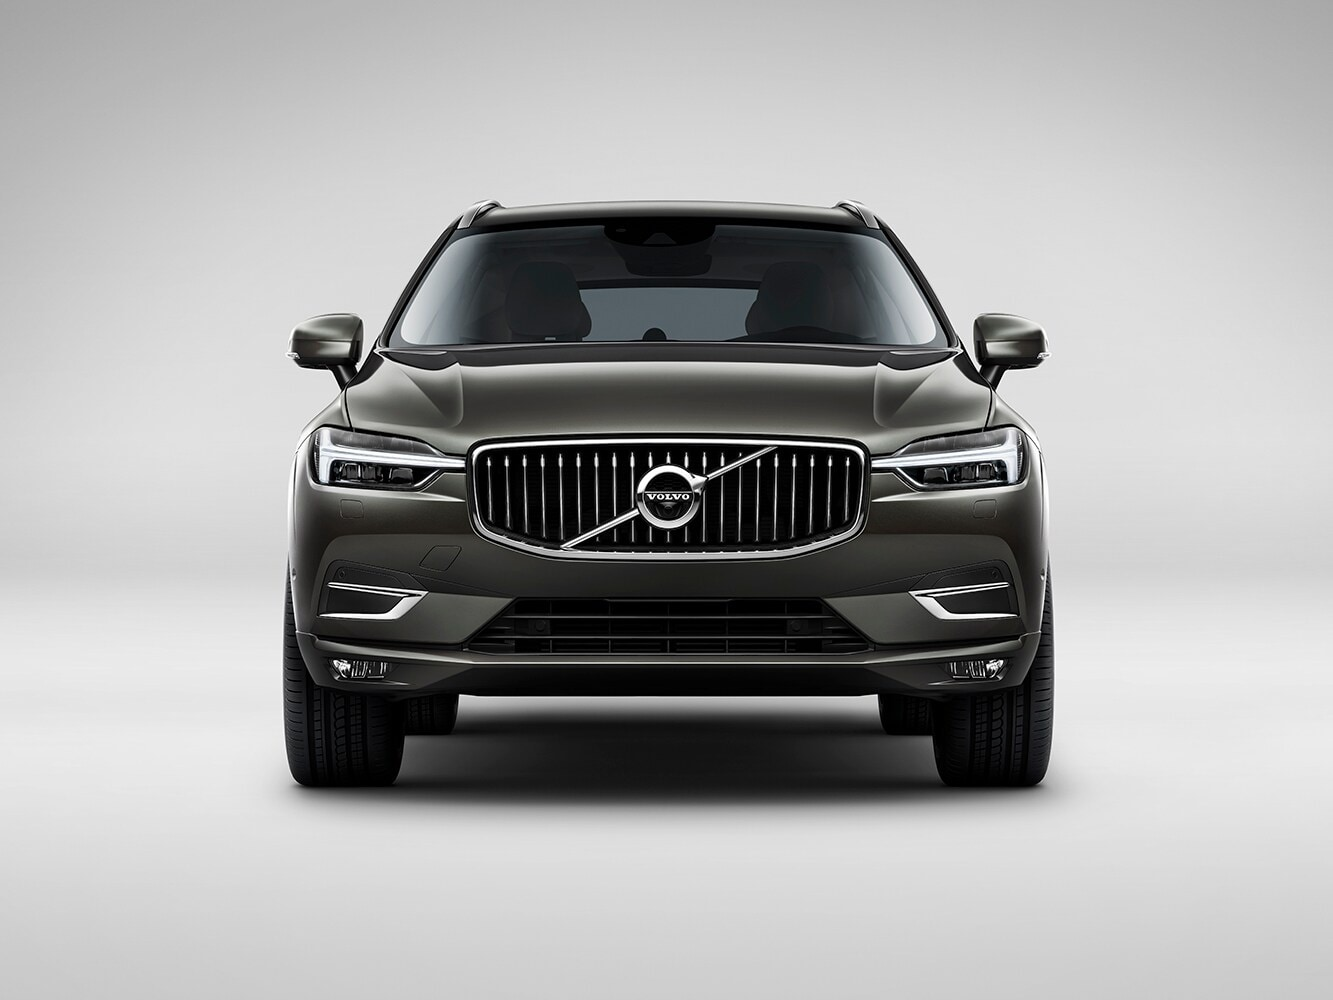 Front view of the new Volvo XC60 Inscription